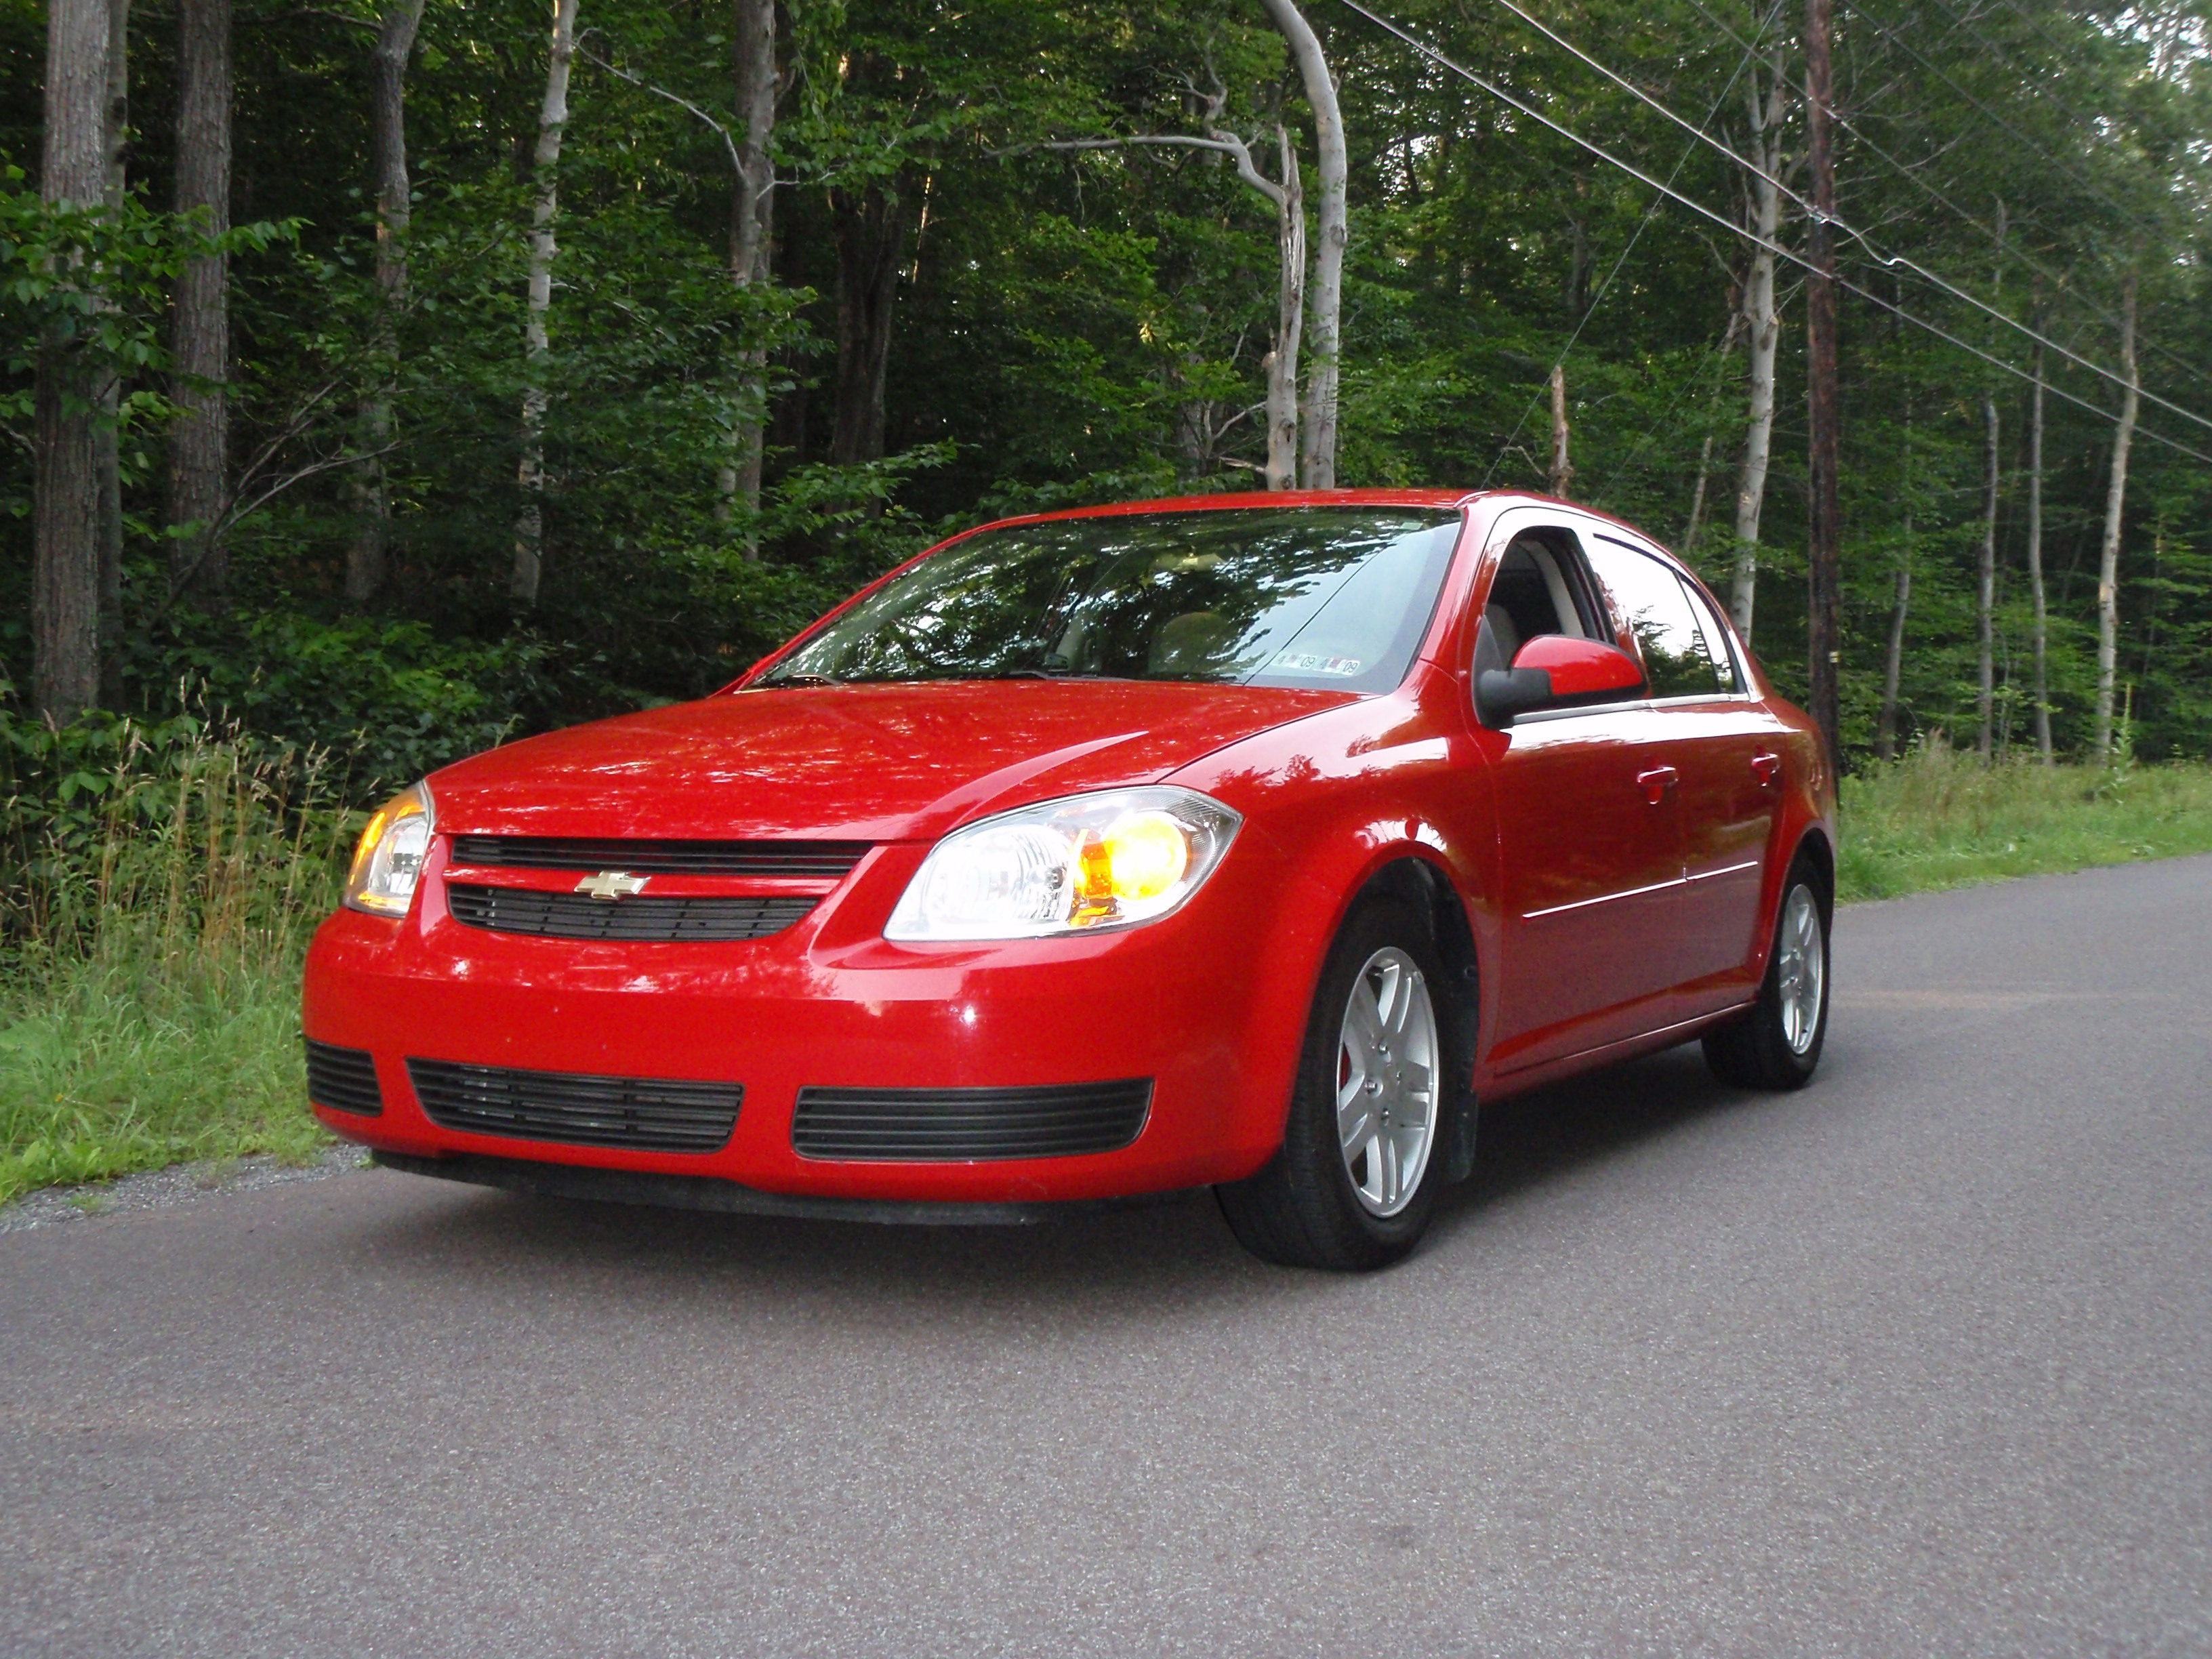 2005 Chevrolet Cobalt Information And Photos Zomb Drive